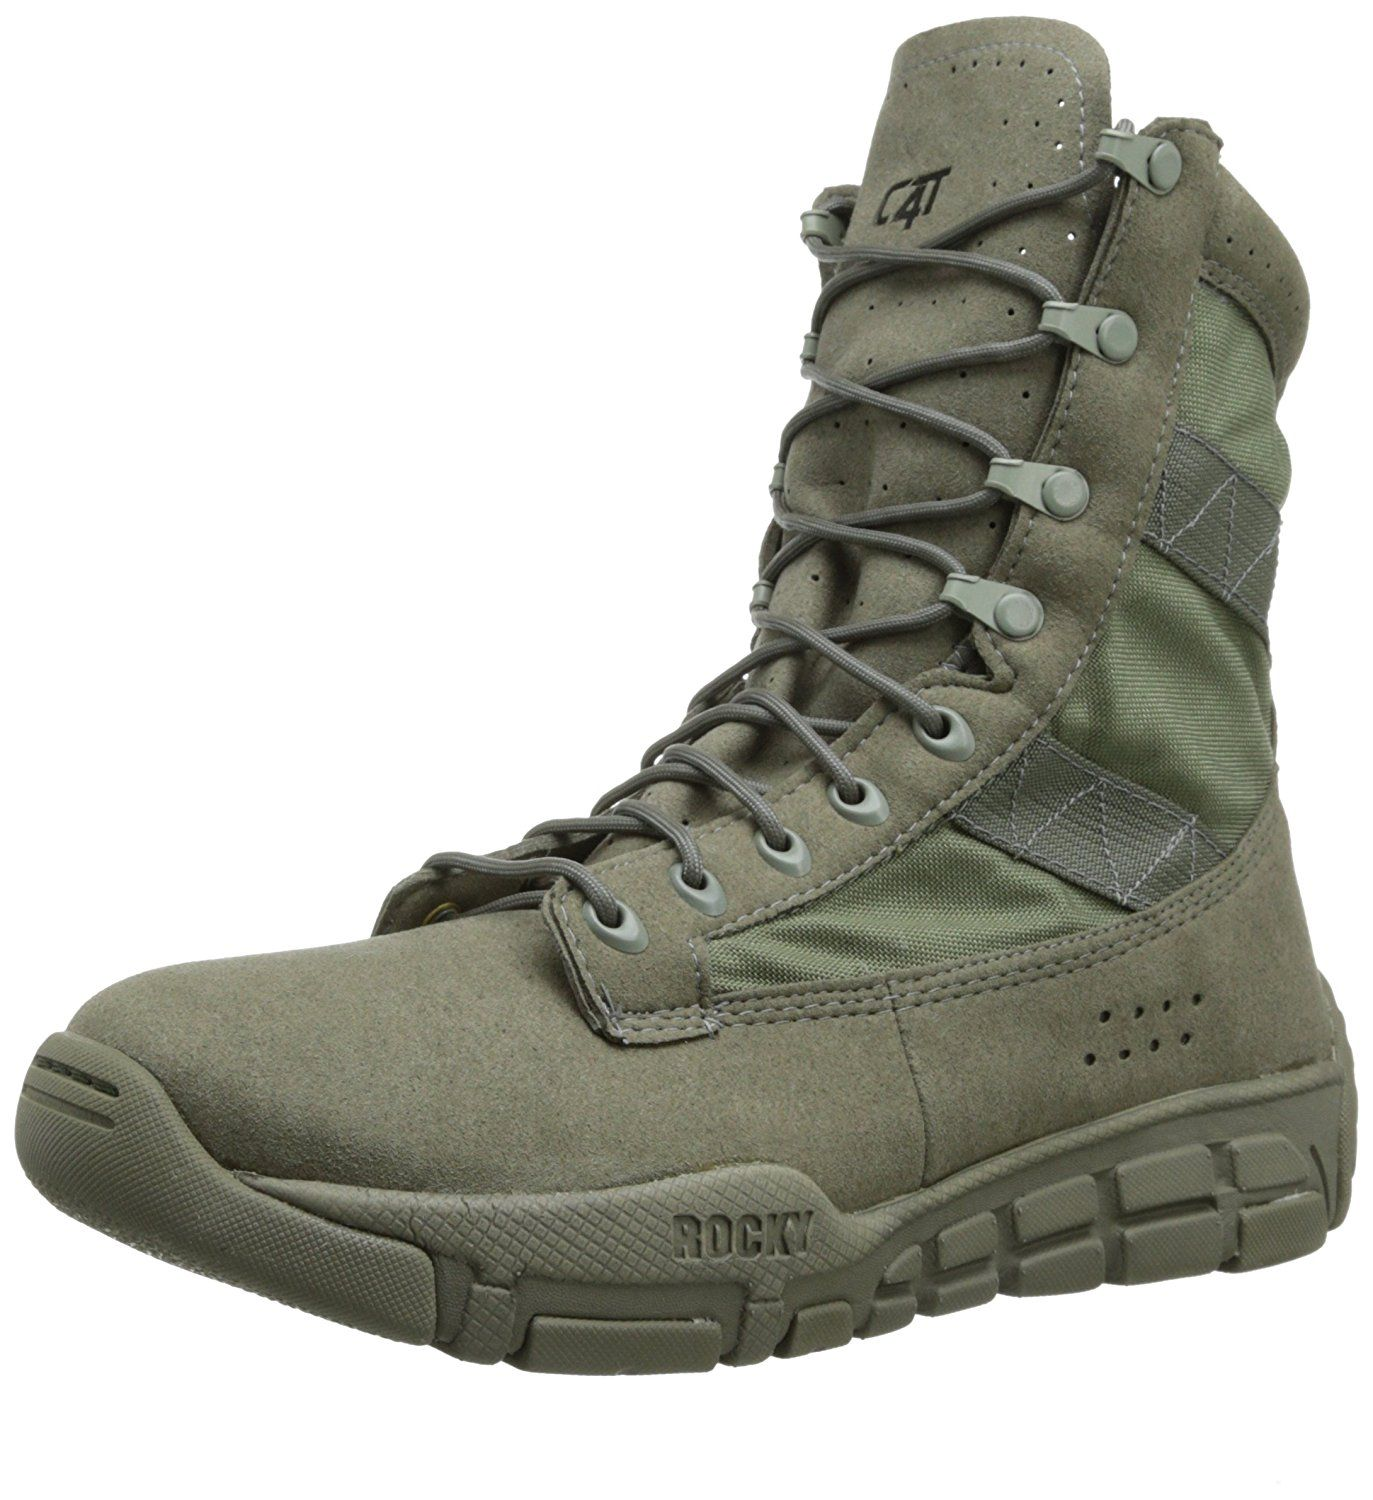 9ecb2b25c8c The 10 Best Lightweight Tactical Boots in 2019 - Reviewed By Experts ...